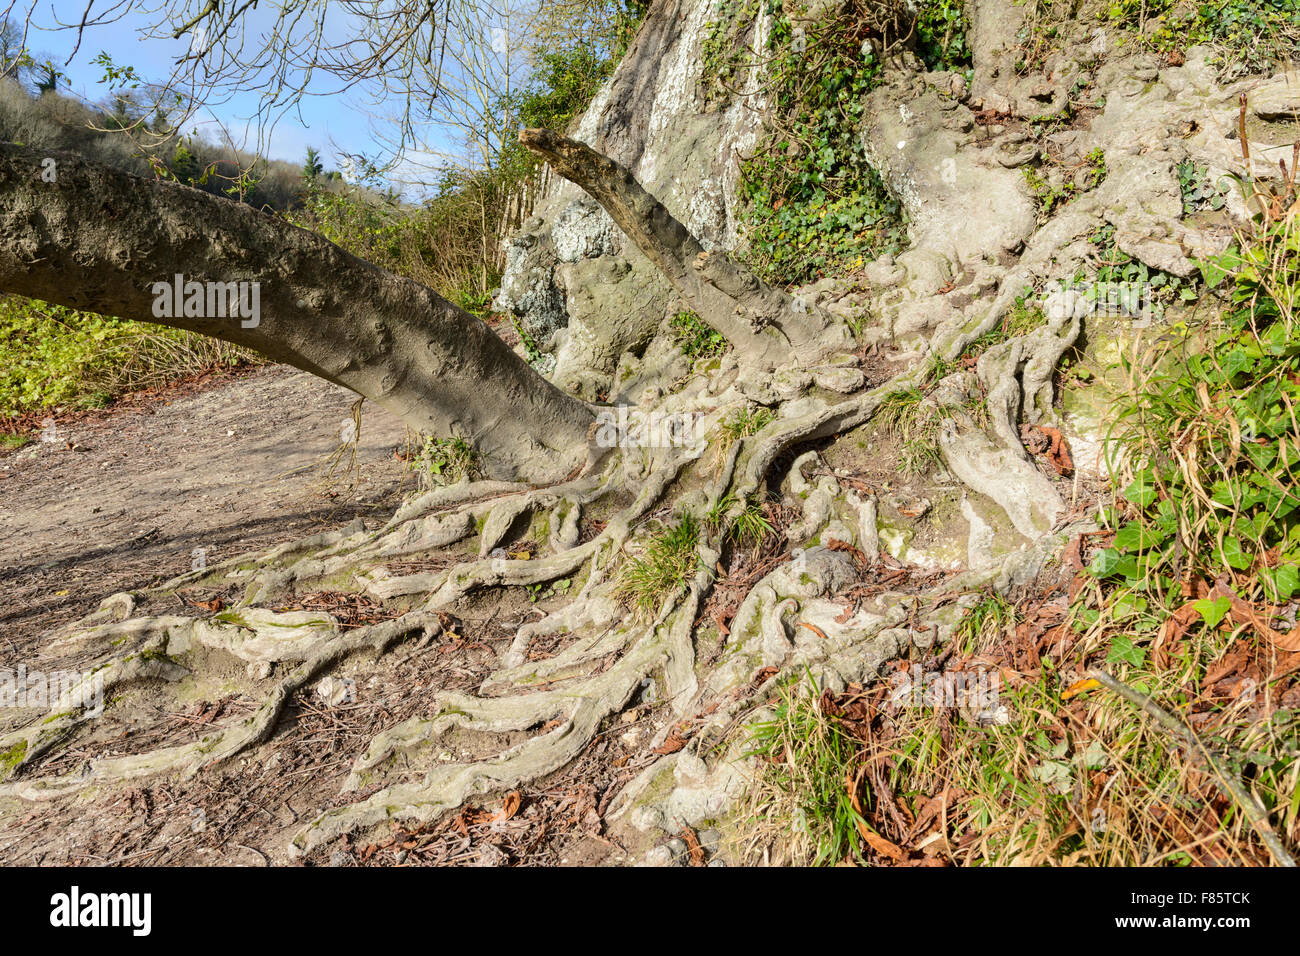 Tree roots exposed and growing over the ground. - Stock Image